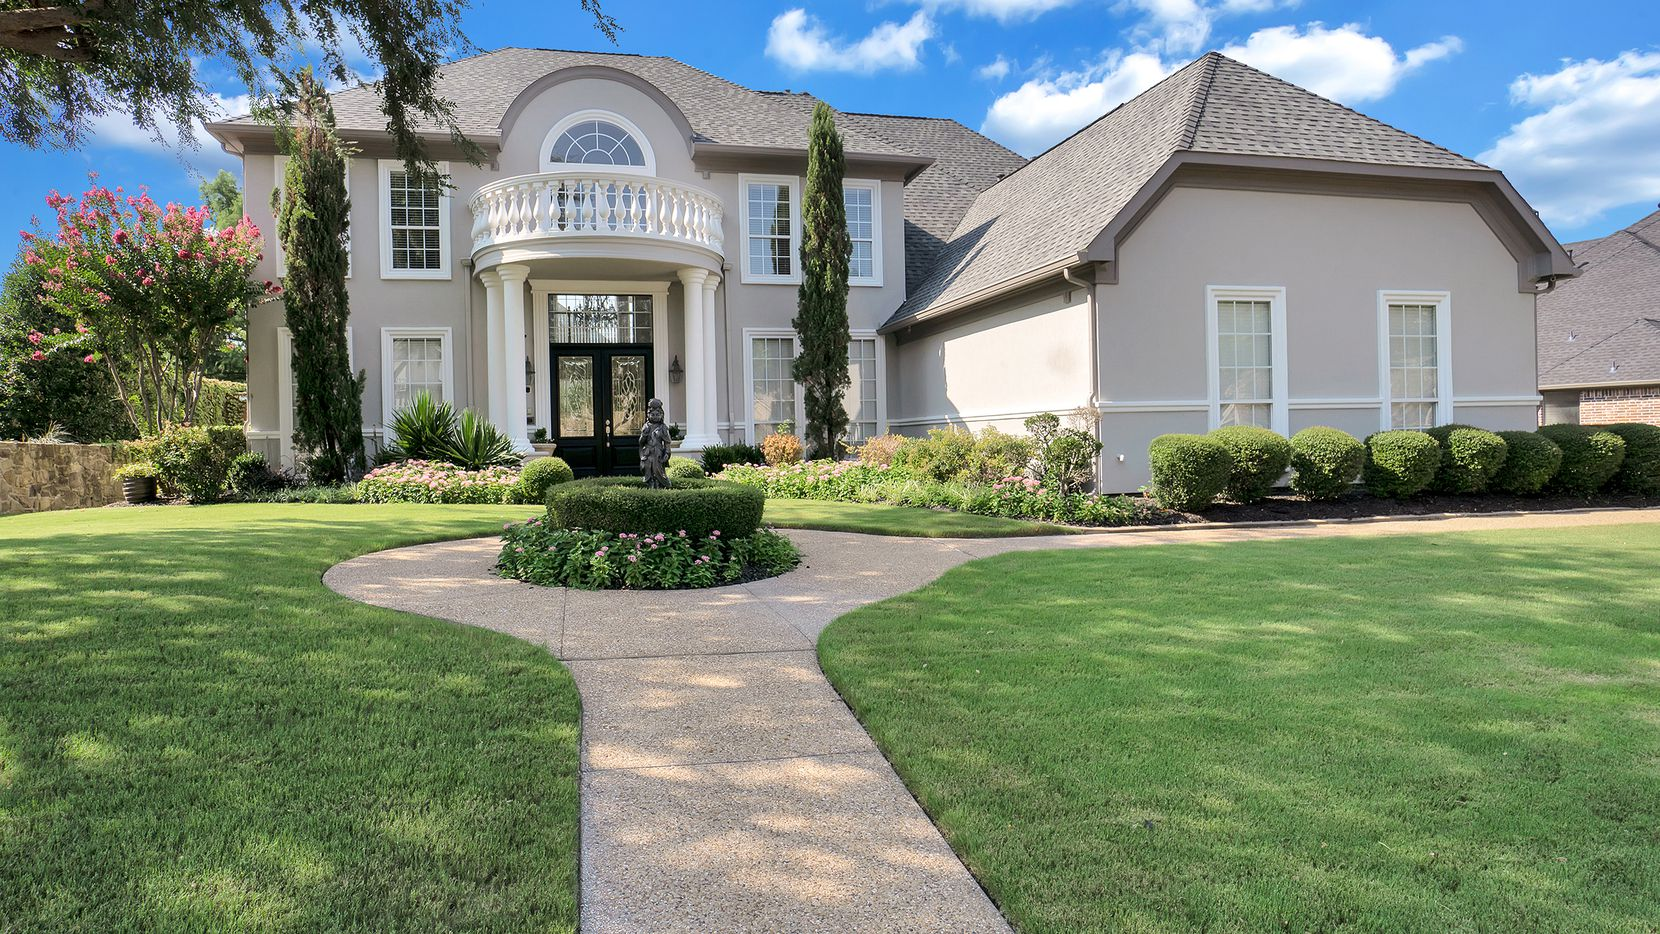 Listed at $799,000, the four-bedroom home at 723 Starlight Pass in Buffalo Creek has game and media rooms, a pool, summer kitchen and covered patio.